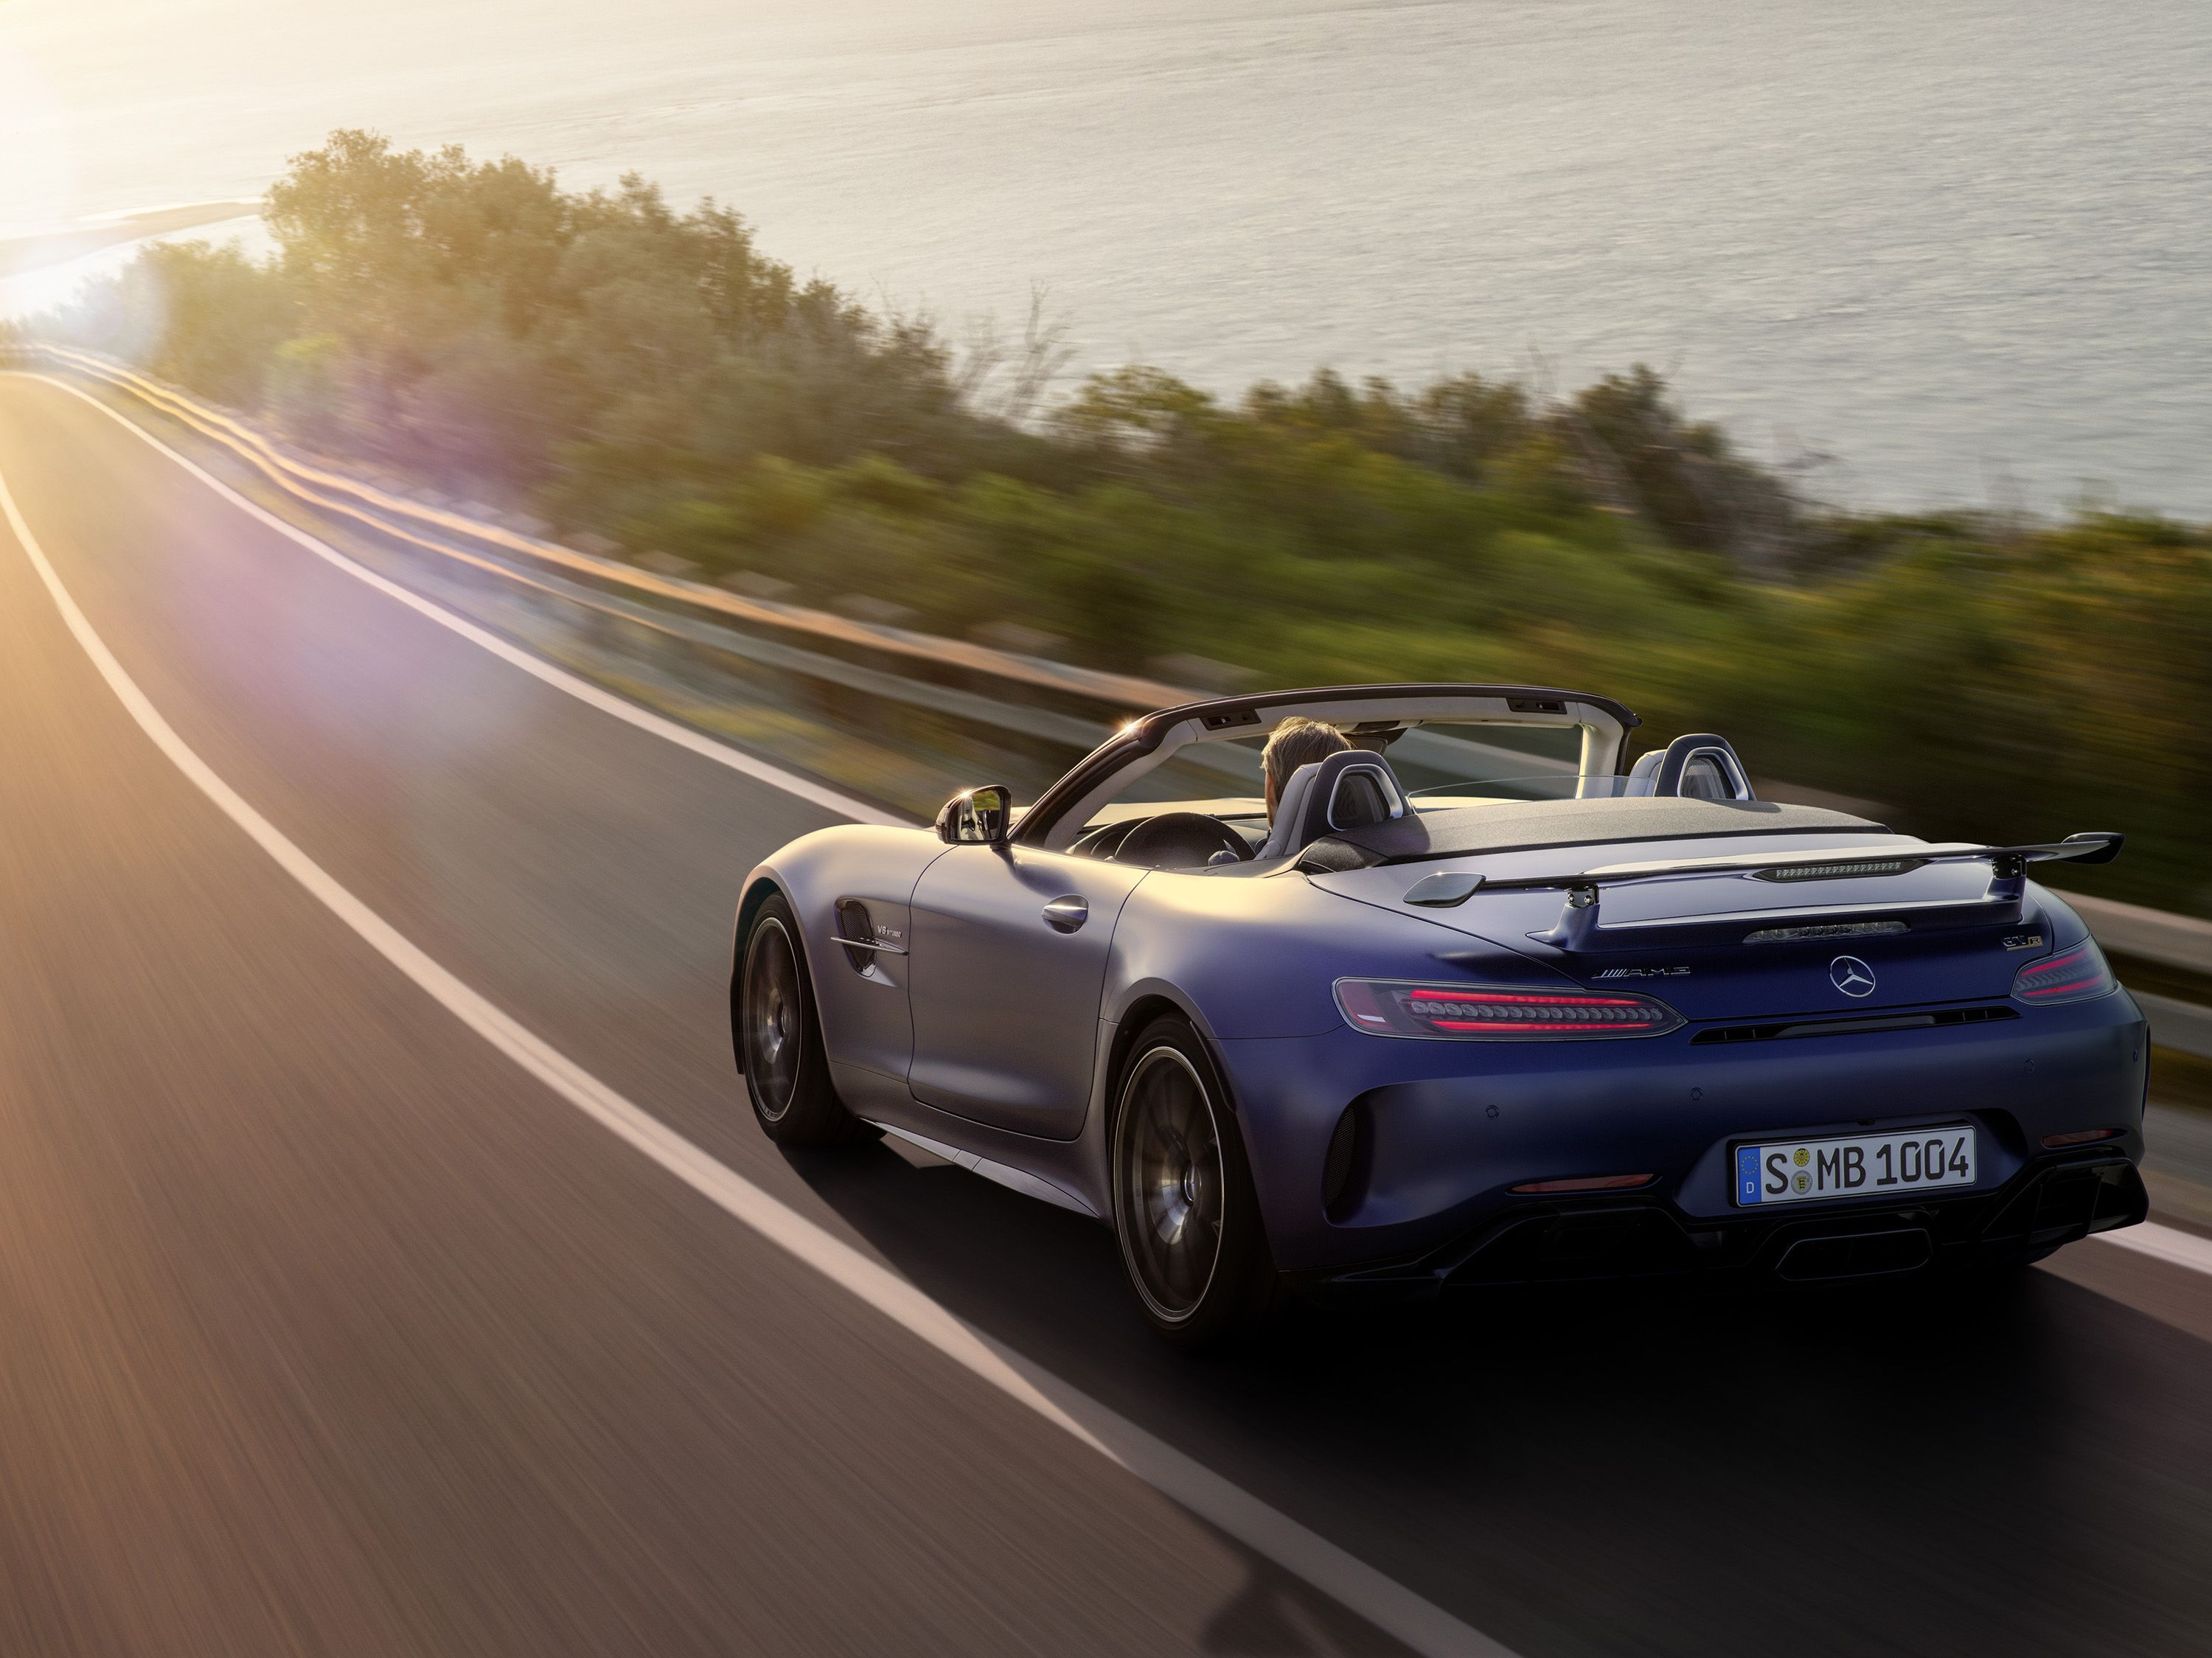 2020 Mercedes Amg Gt R Roadster Makes Its Debut At The 2019 Geneva Motor Show